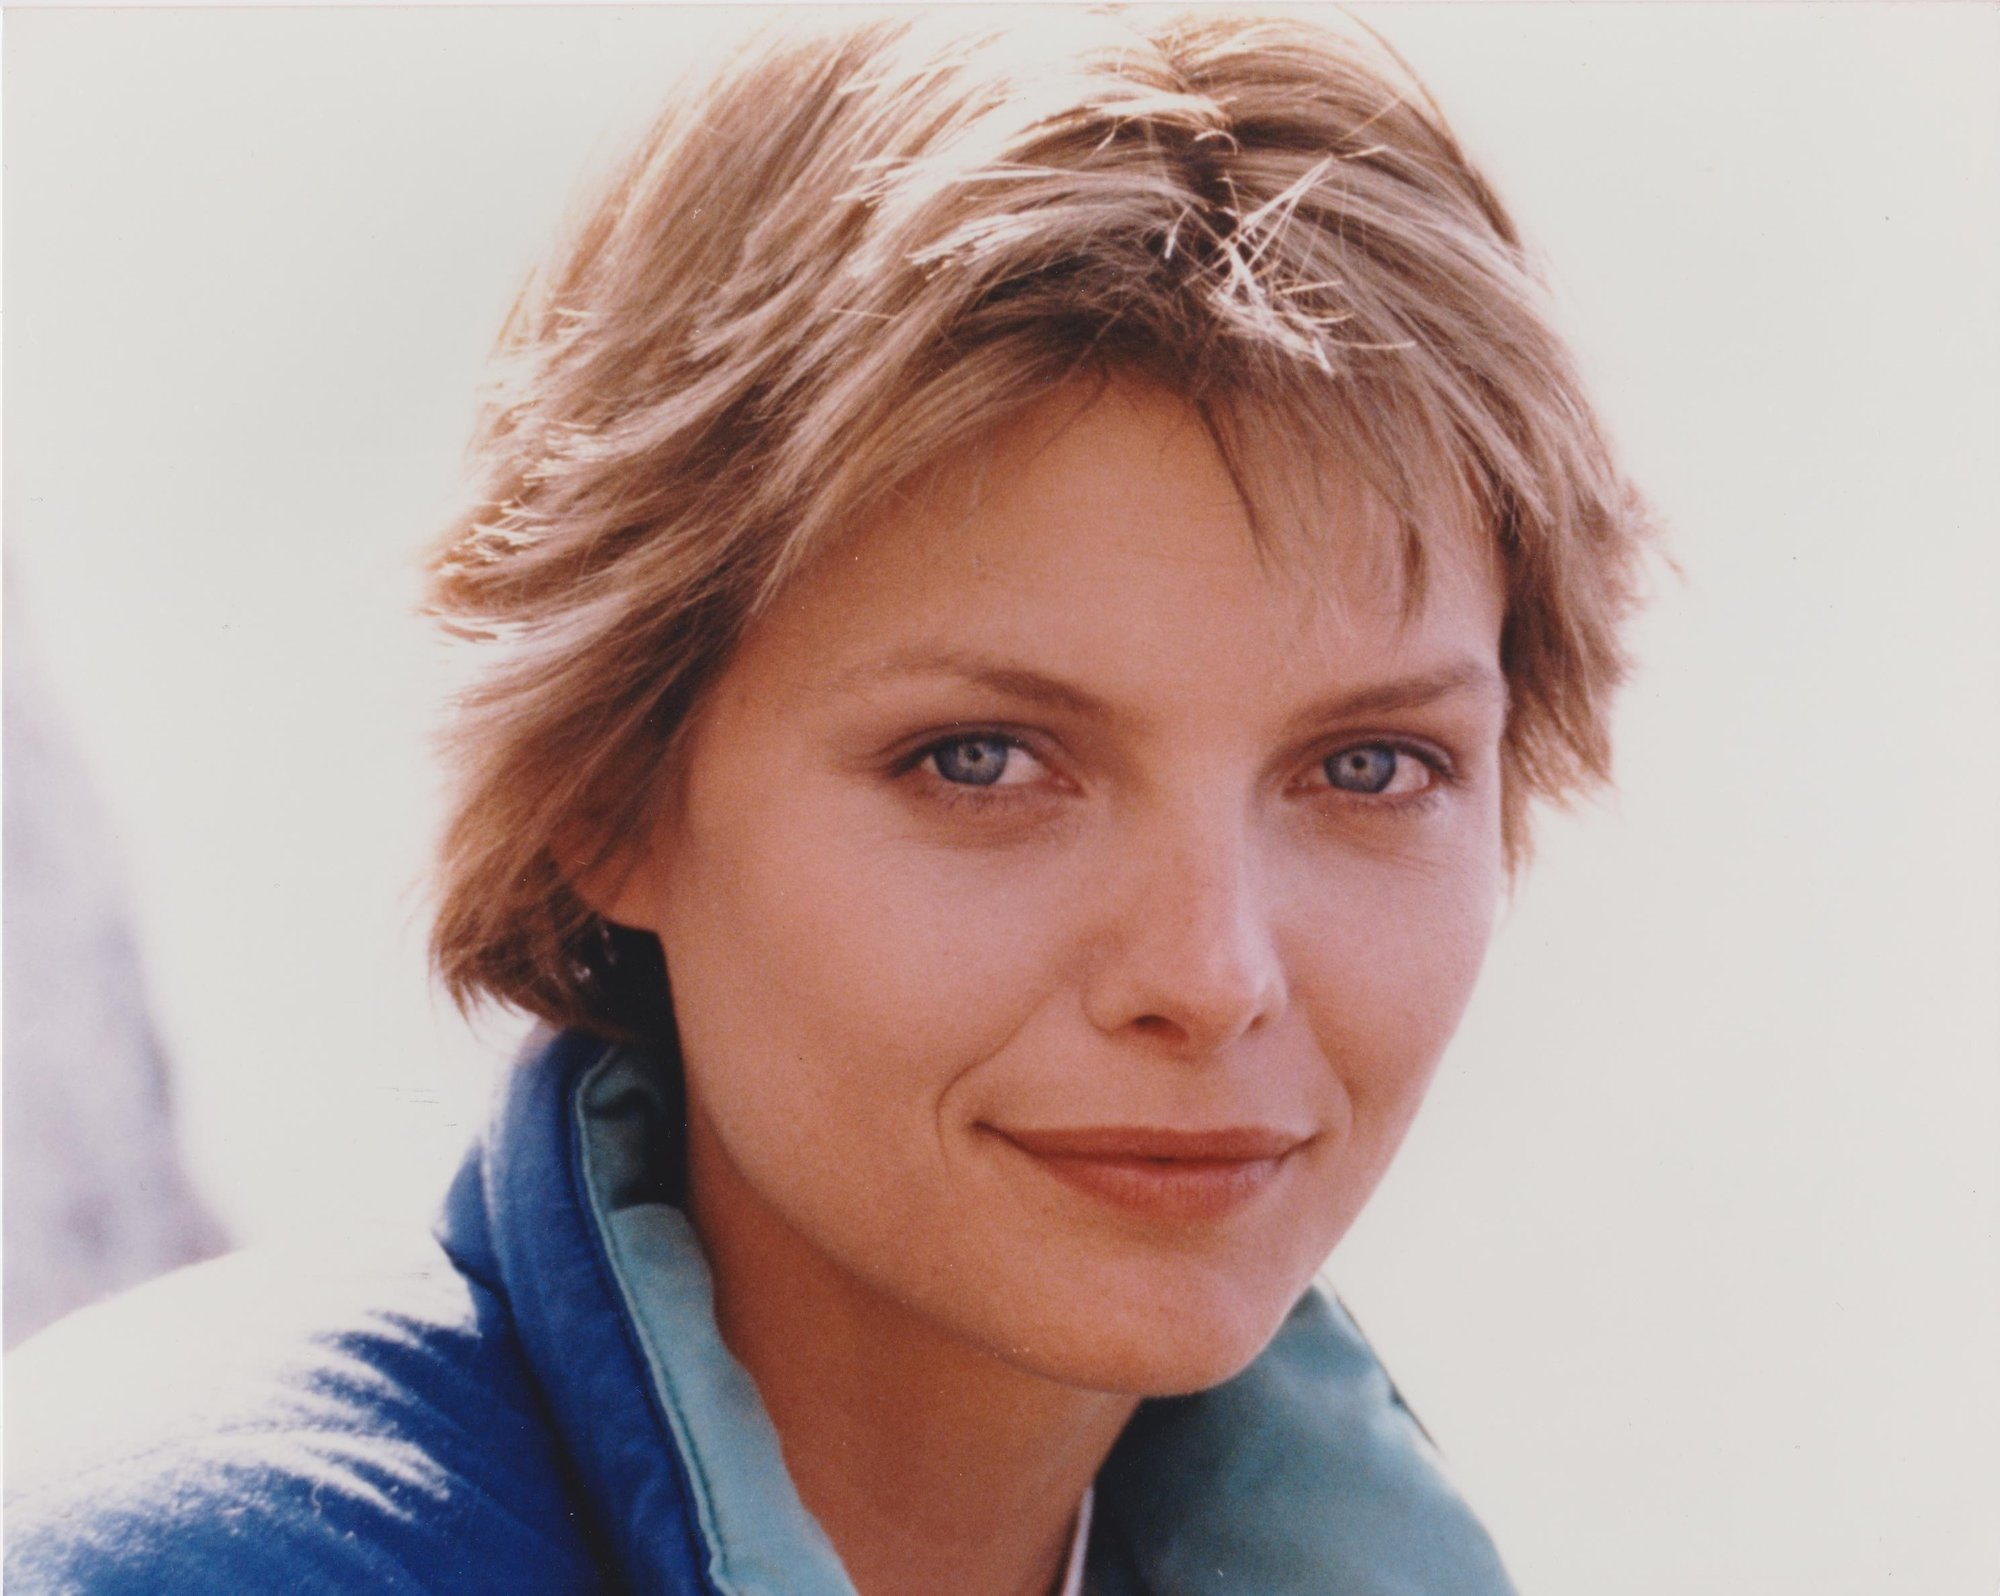 MICHELLE PFEIFFER AMERICAN ACTRESS & PRODUCER PHOTOGRAPH 20 x 25cm FOTO